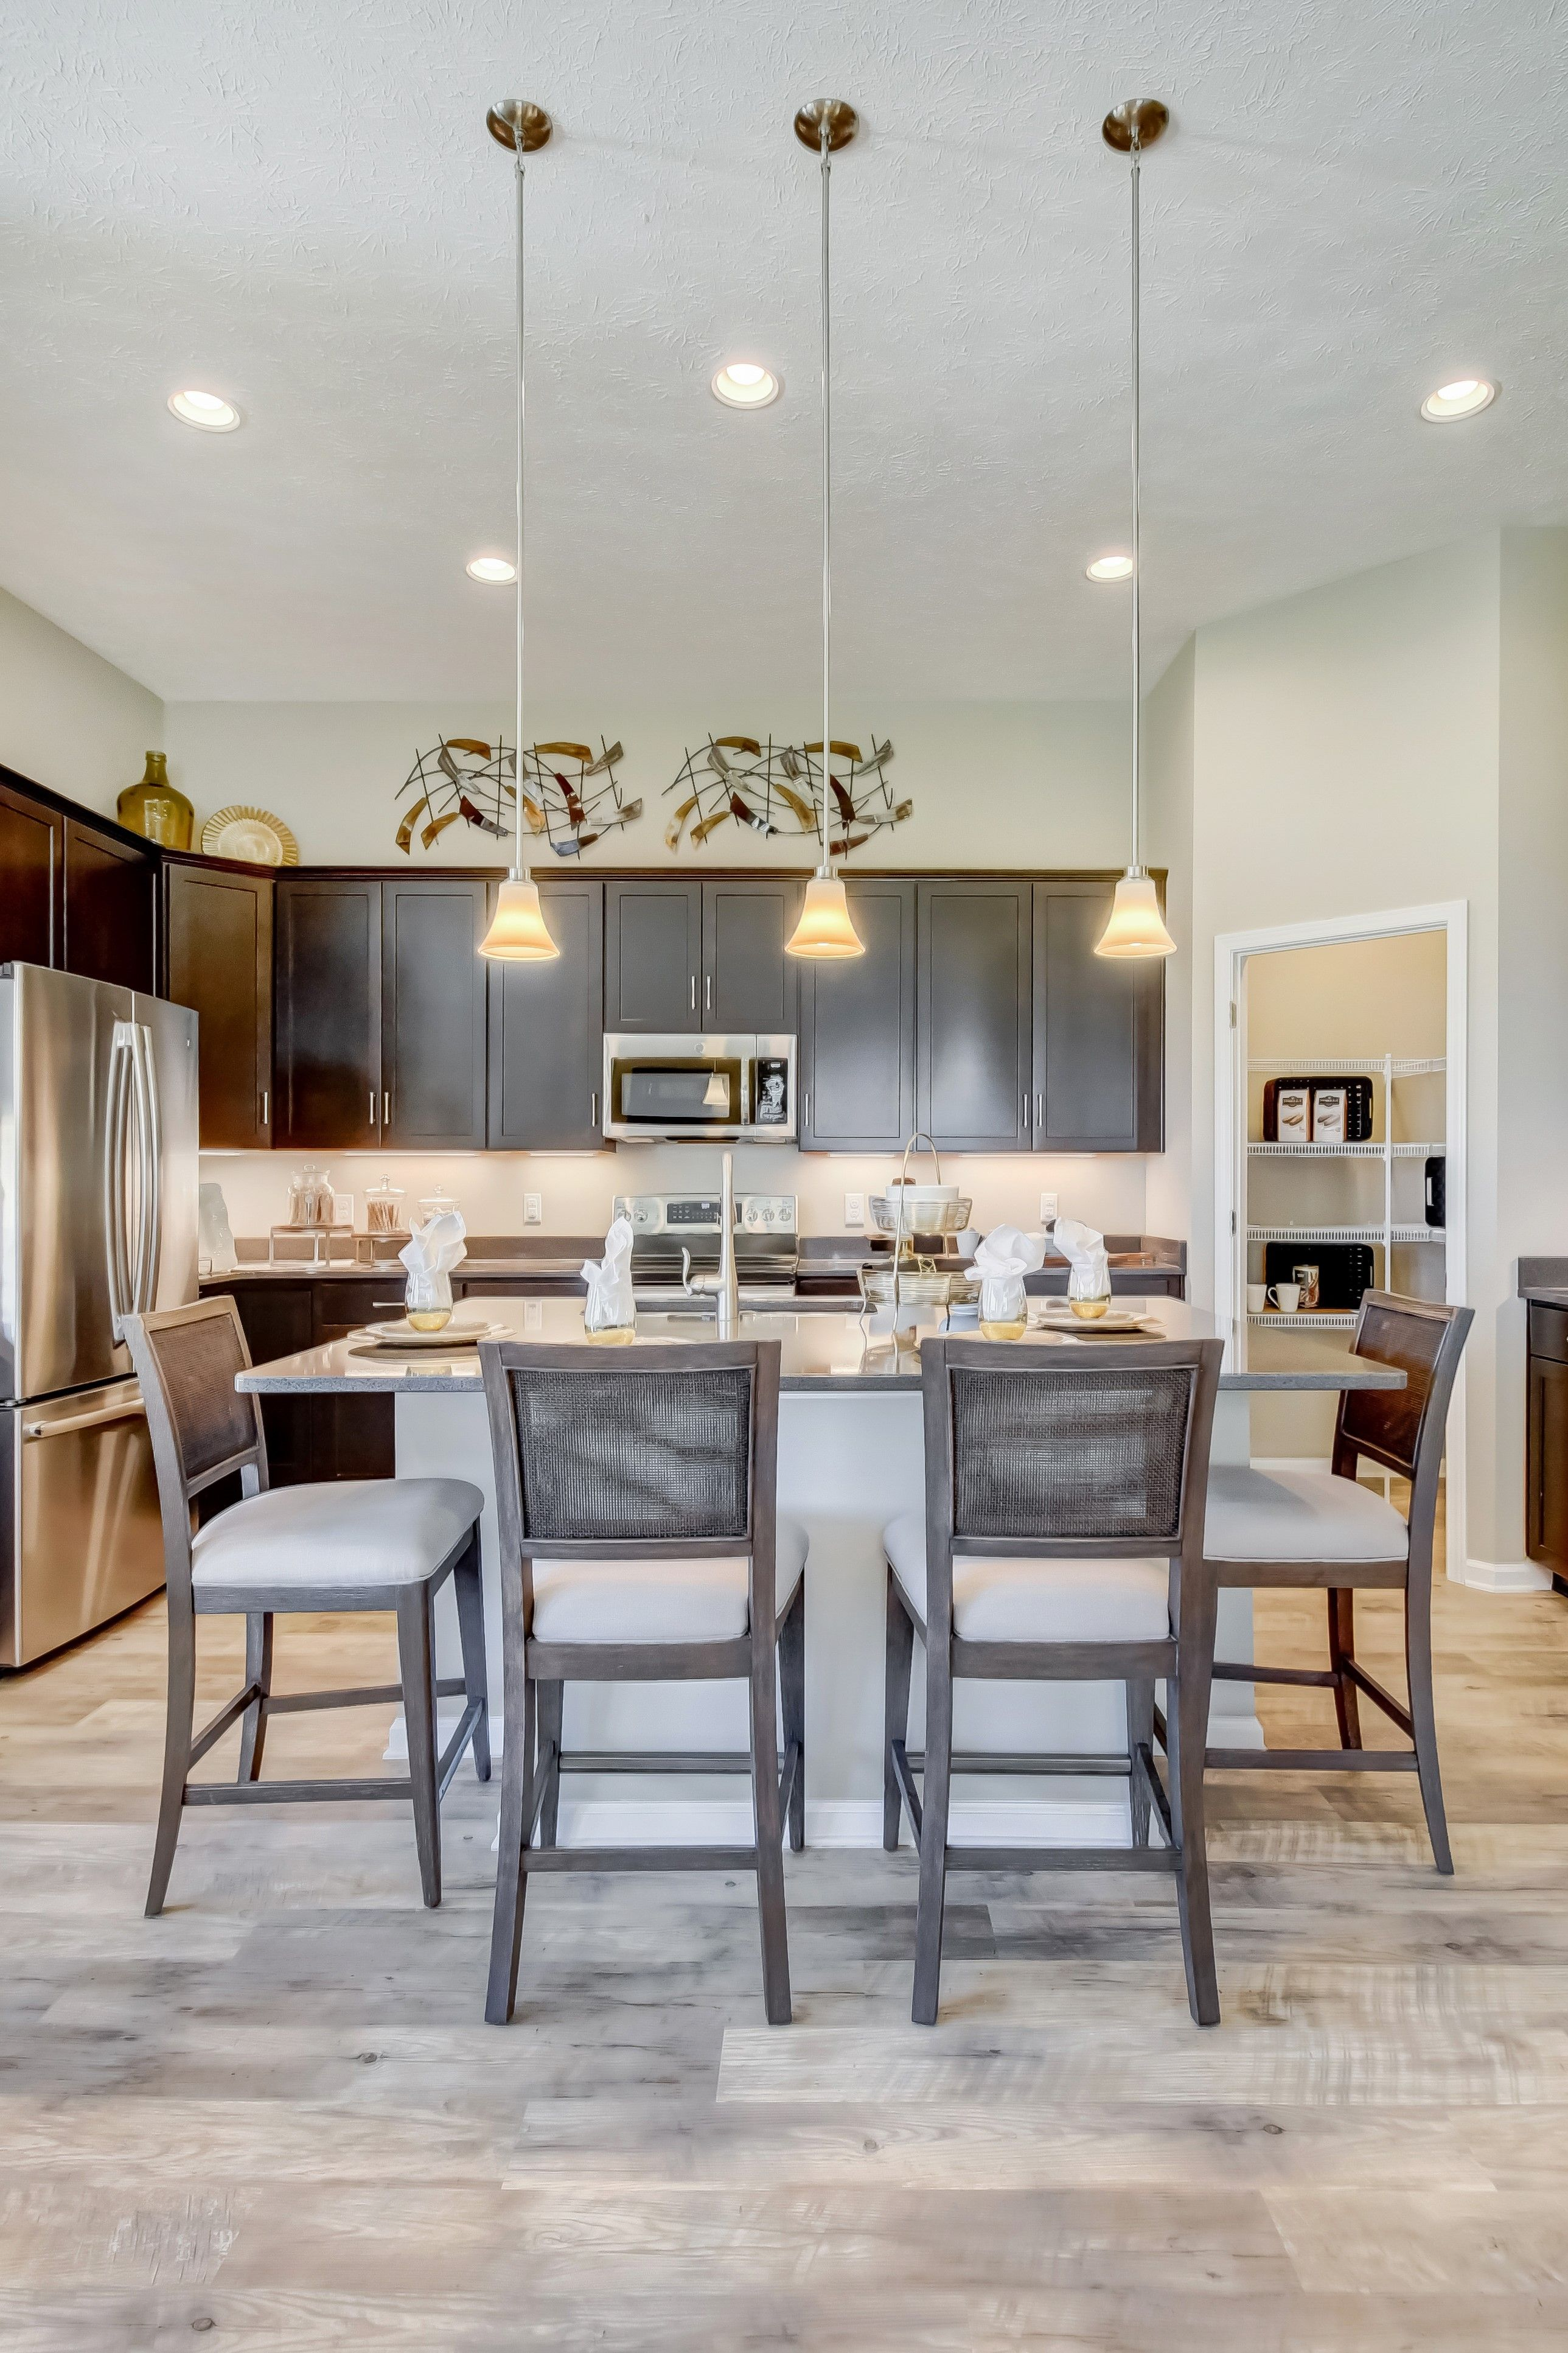 Kitchen featured in the Barclay By K. Hovnanian's® Four Seasons in Cleveland, OH